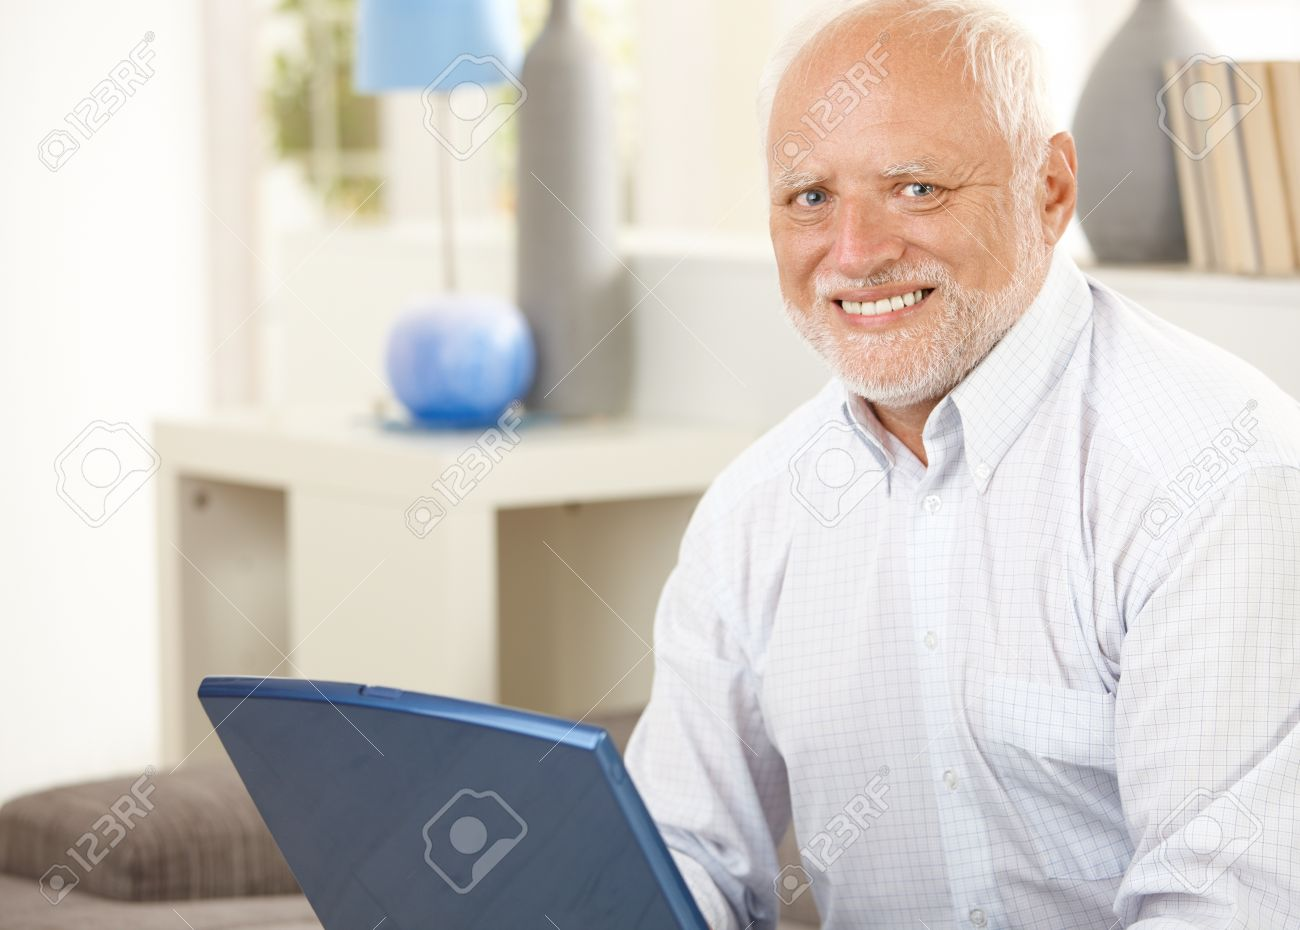 stock photography Adult